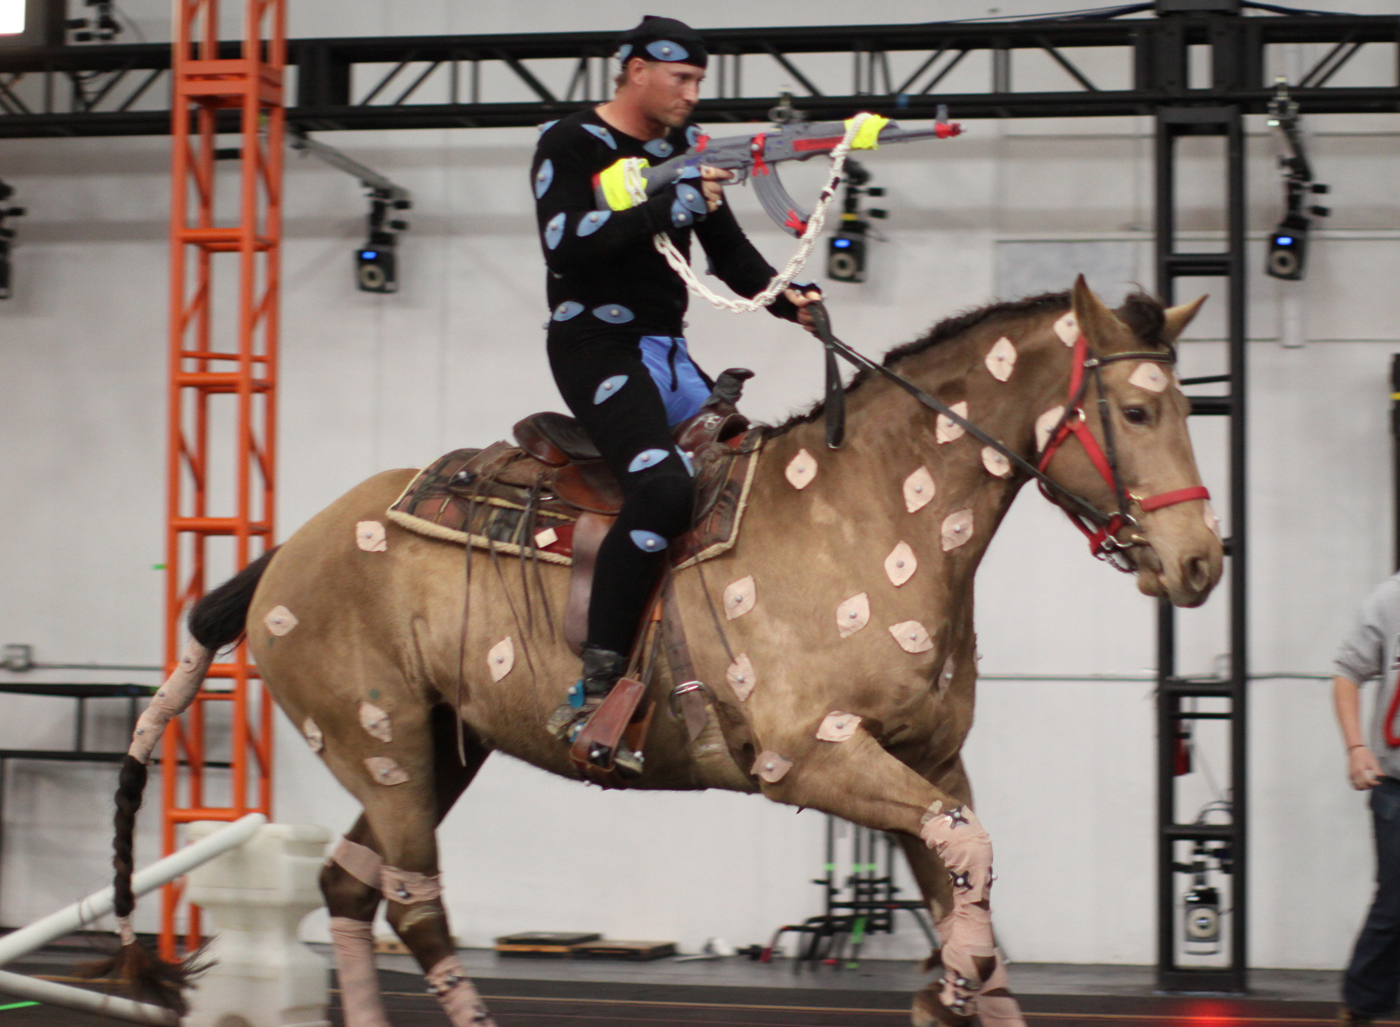 Call Of Duty Black Ops II Horse Motion Capture 2 Wallpaper